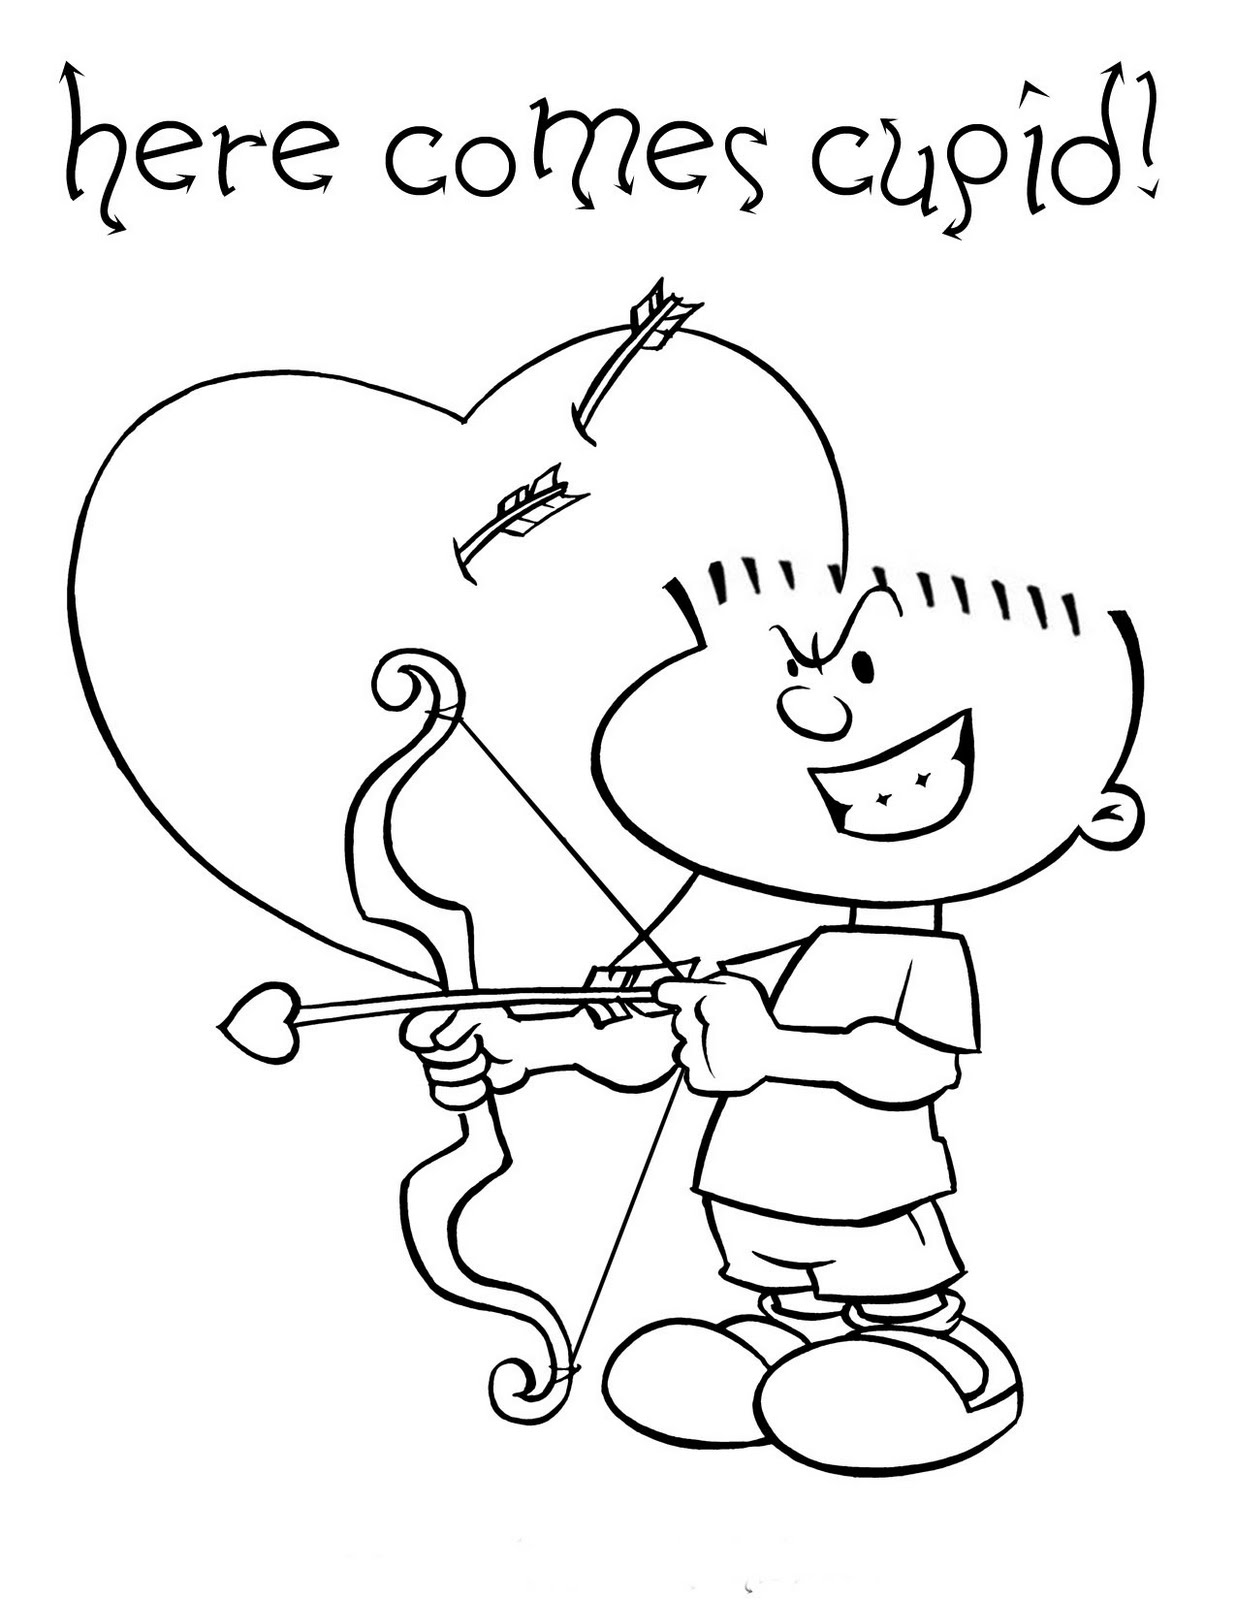 coloring pages cupid - photo#35